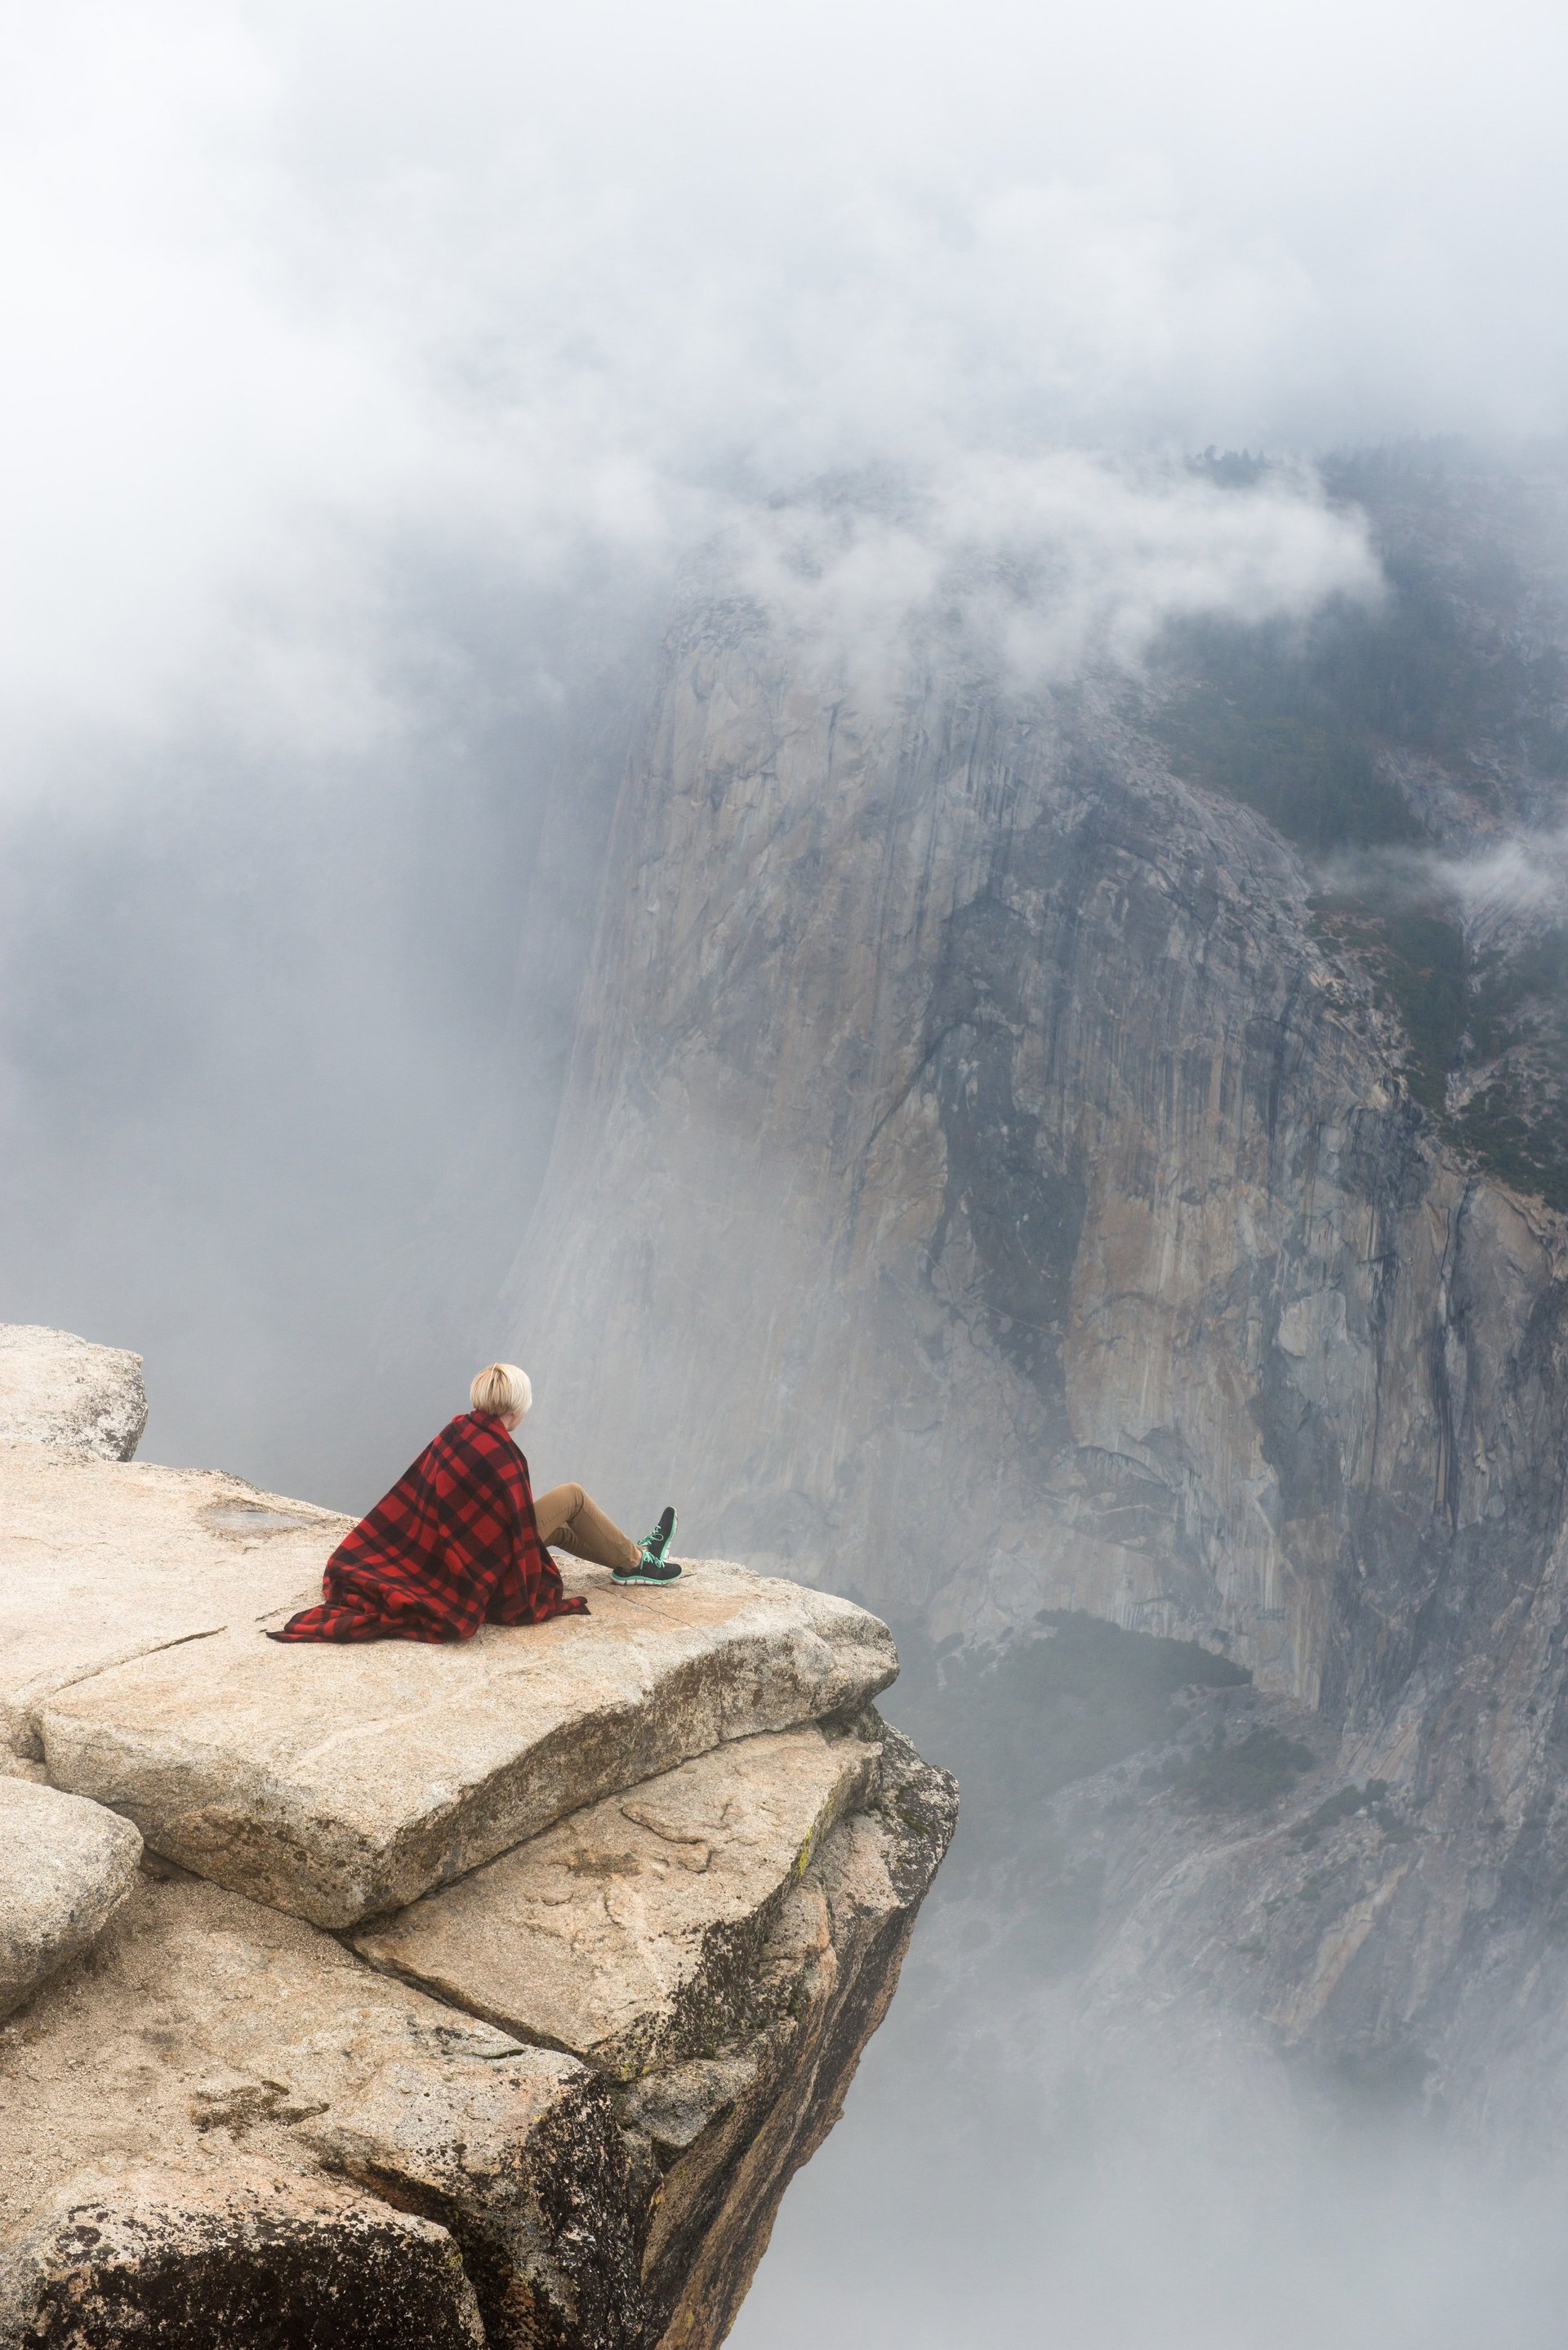 woman sitting at top of a mountain free from anxiety and phobia